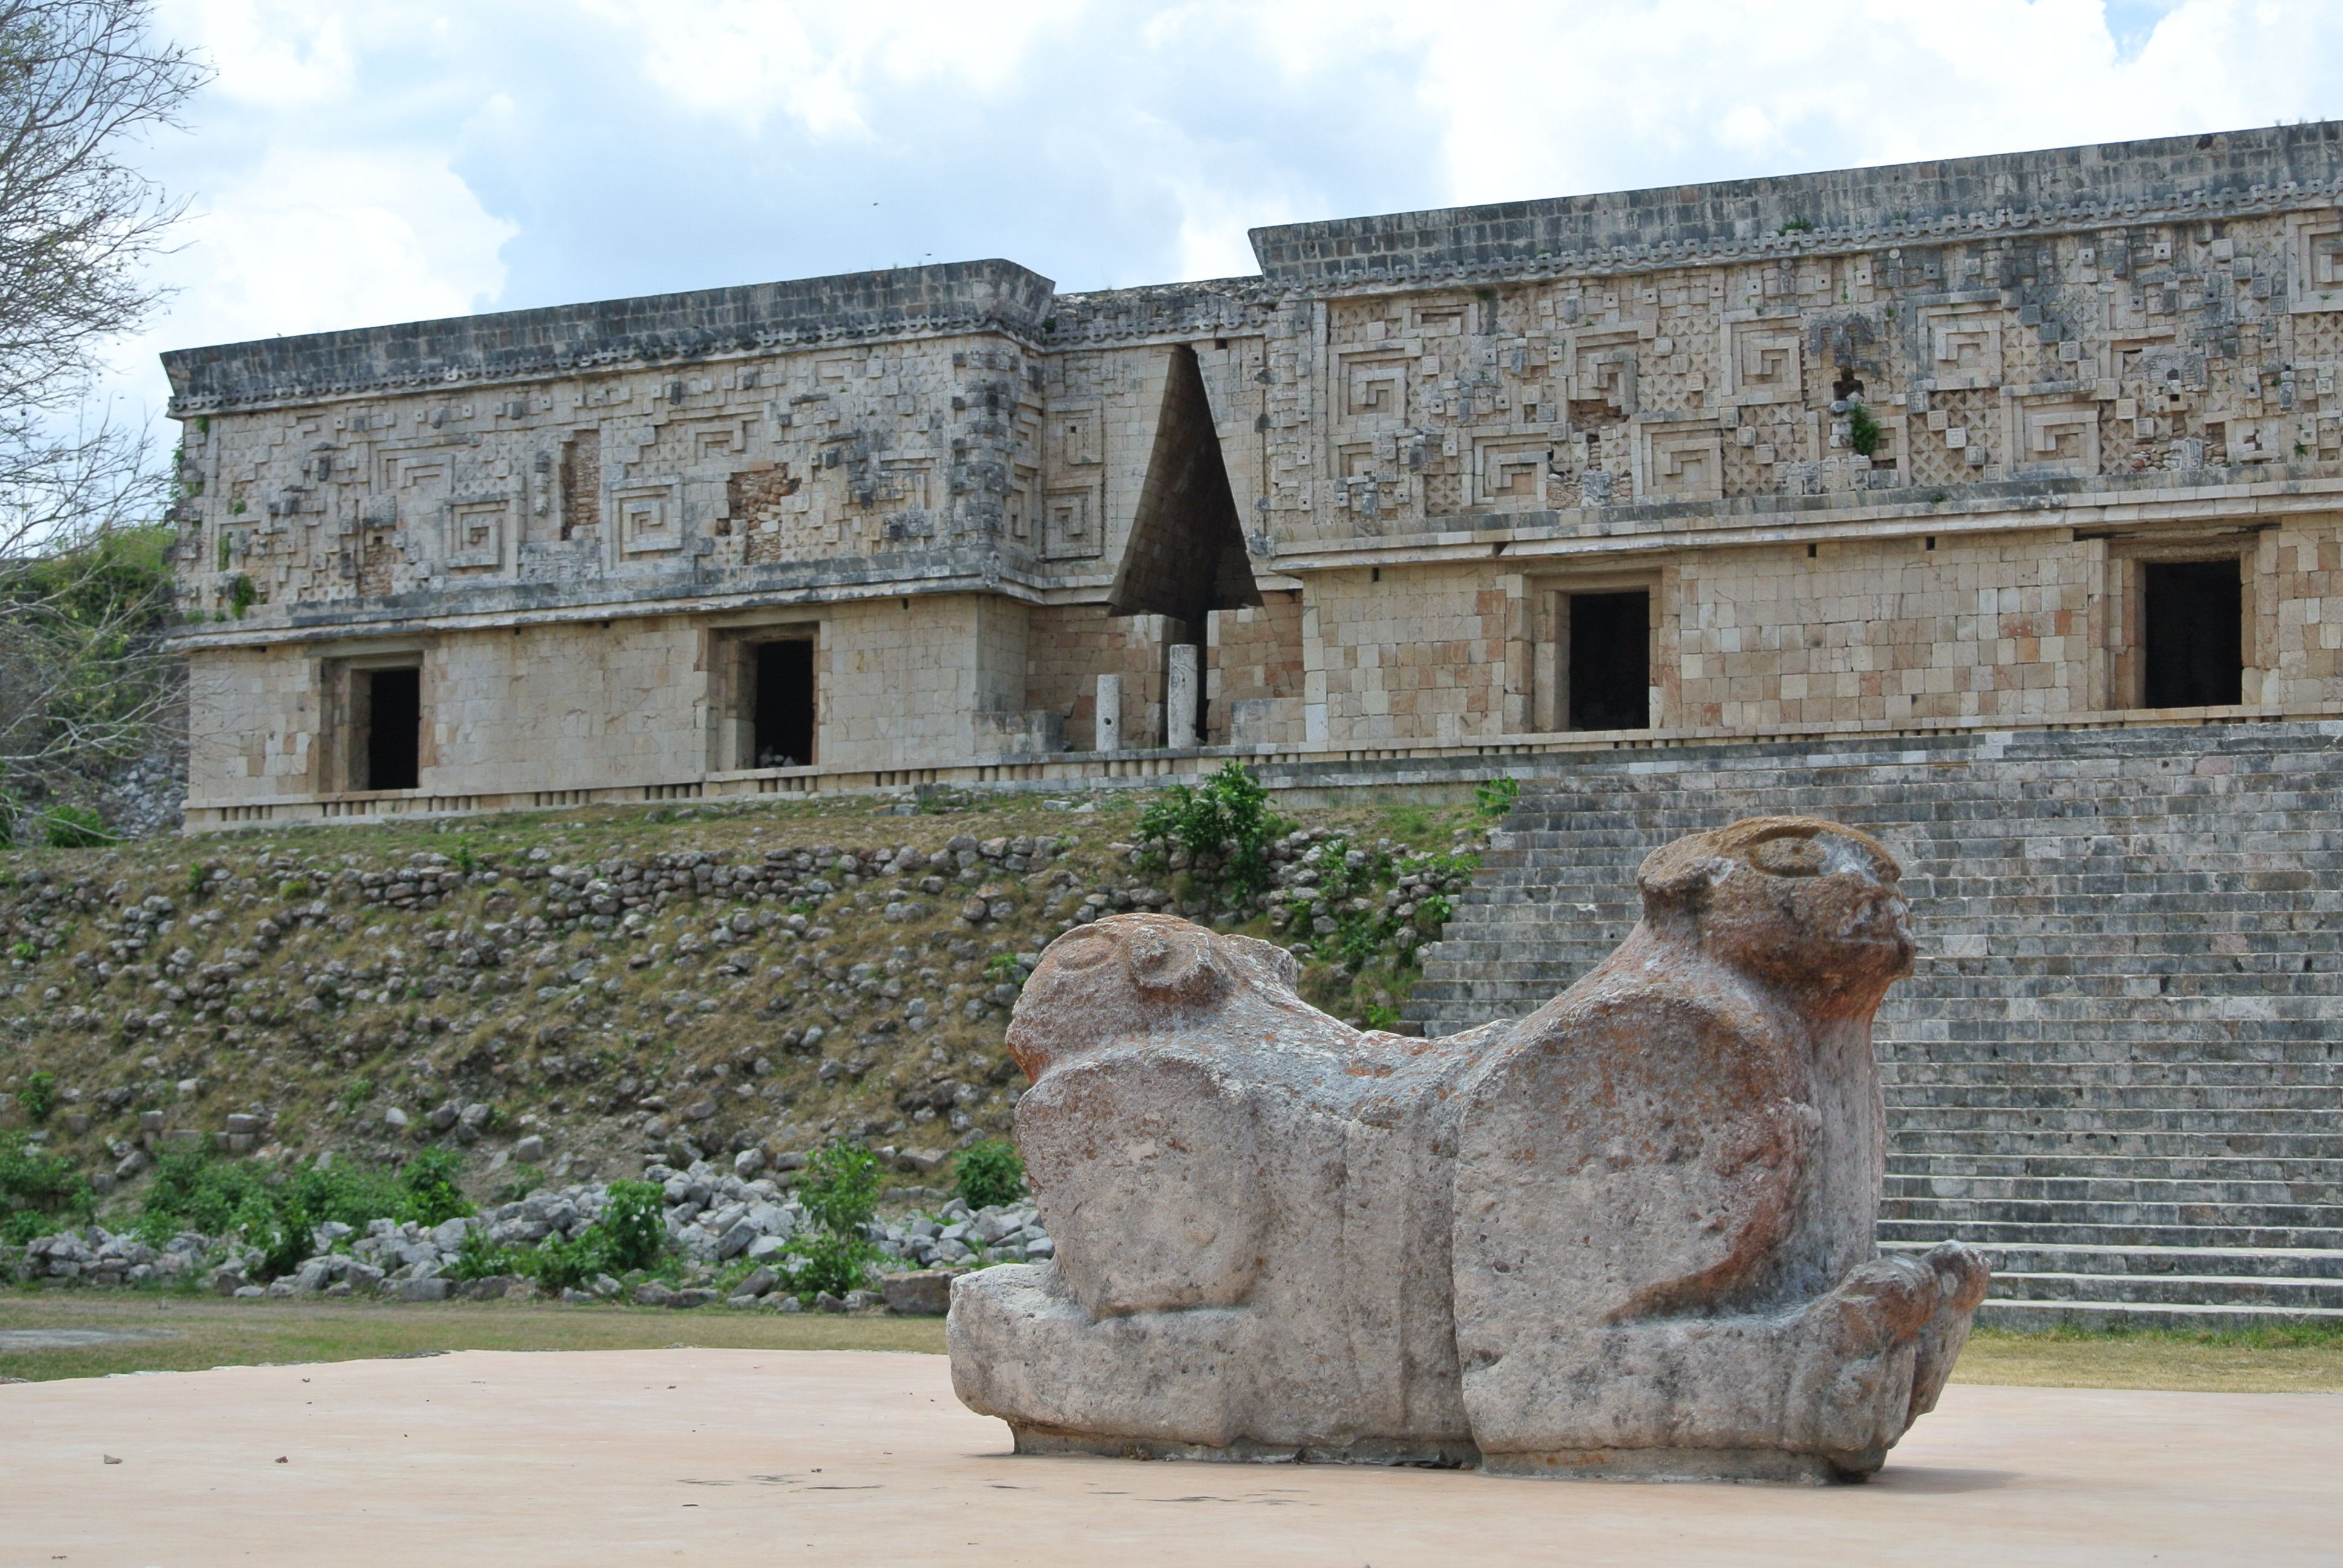 Palace of the Governor at Uxmal